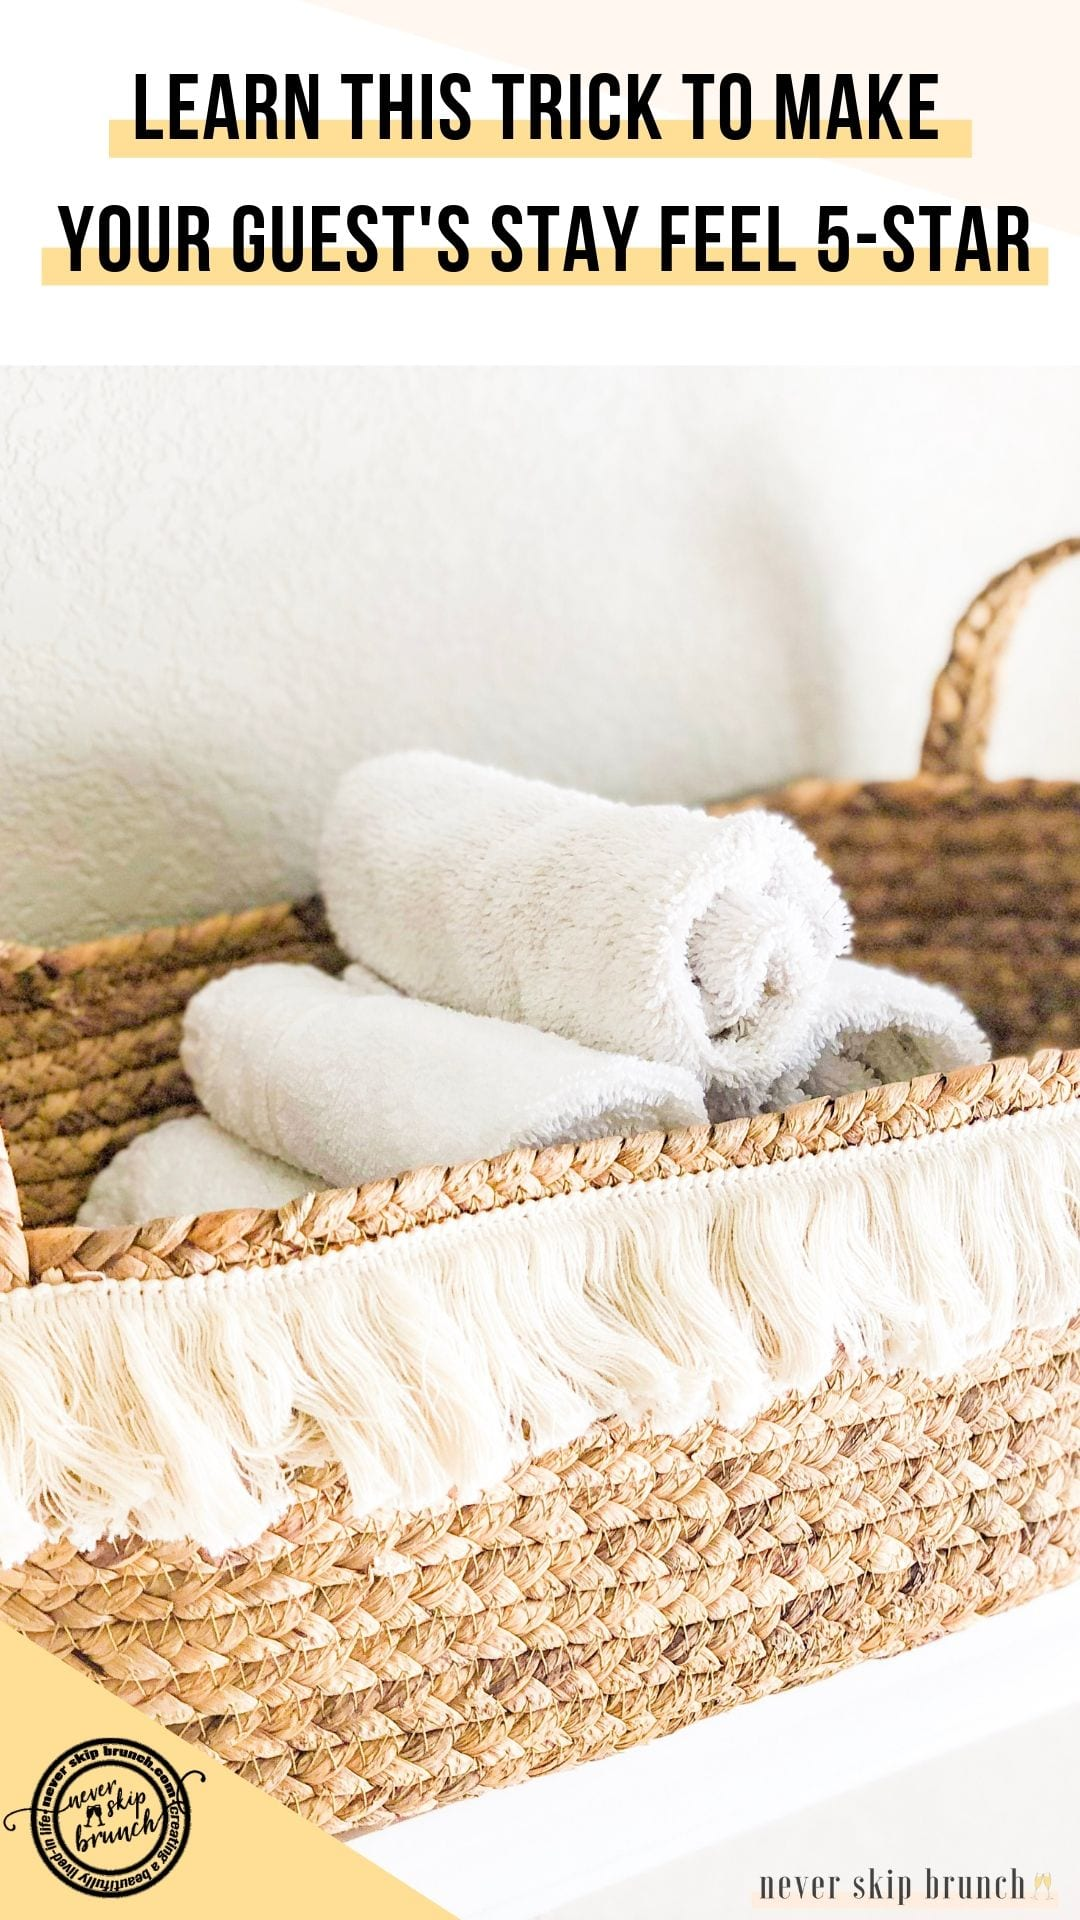 SO PERFECT! Roll your washcloths like a spa | roll washcloths how to | roll washcloths in basket | spa roll towels | roll towels like spa | Never Skip Brunch by Cara Newhart #home #decor #bathroom #spa